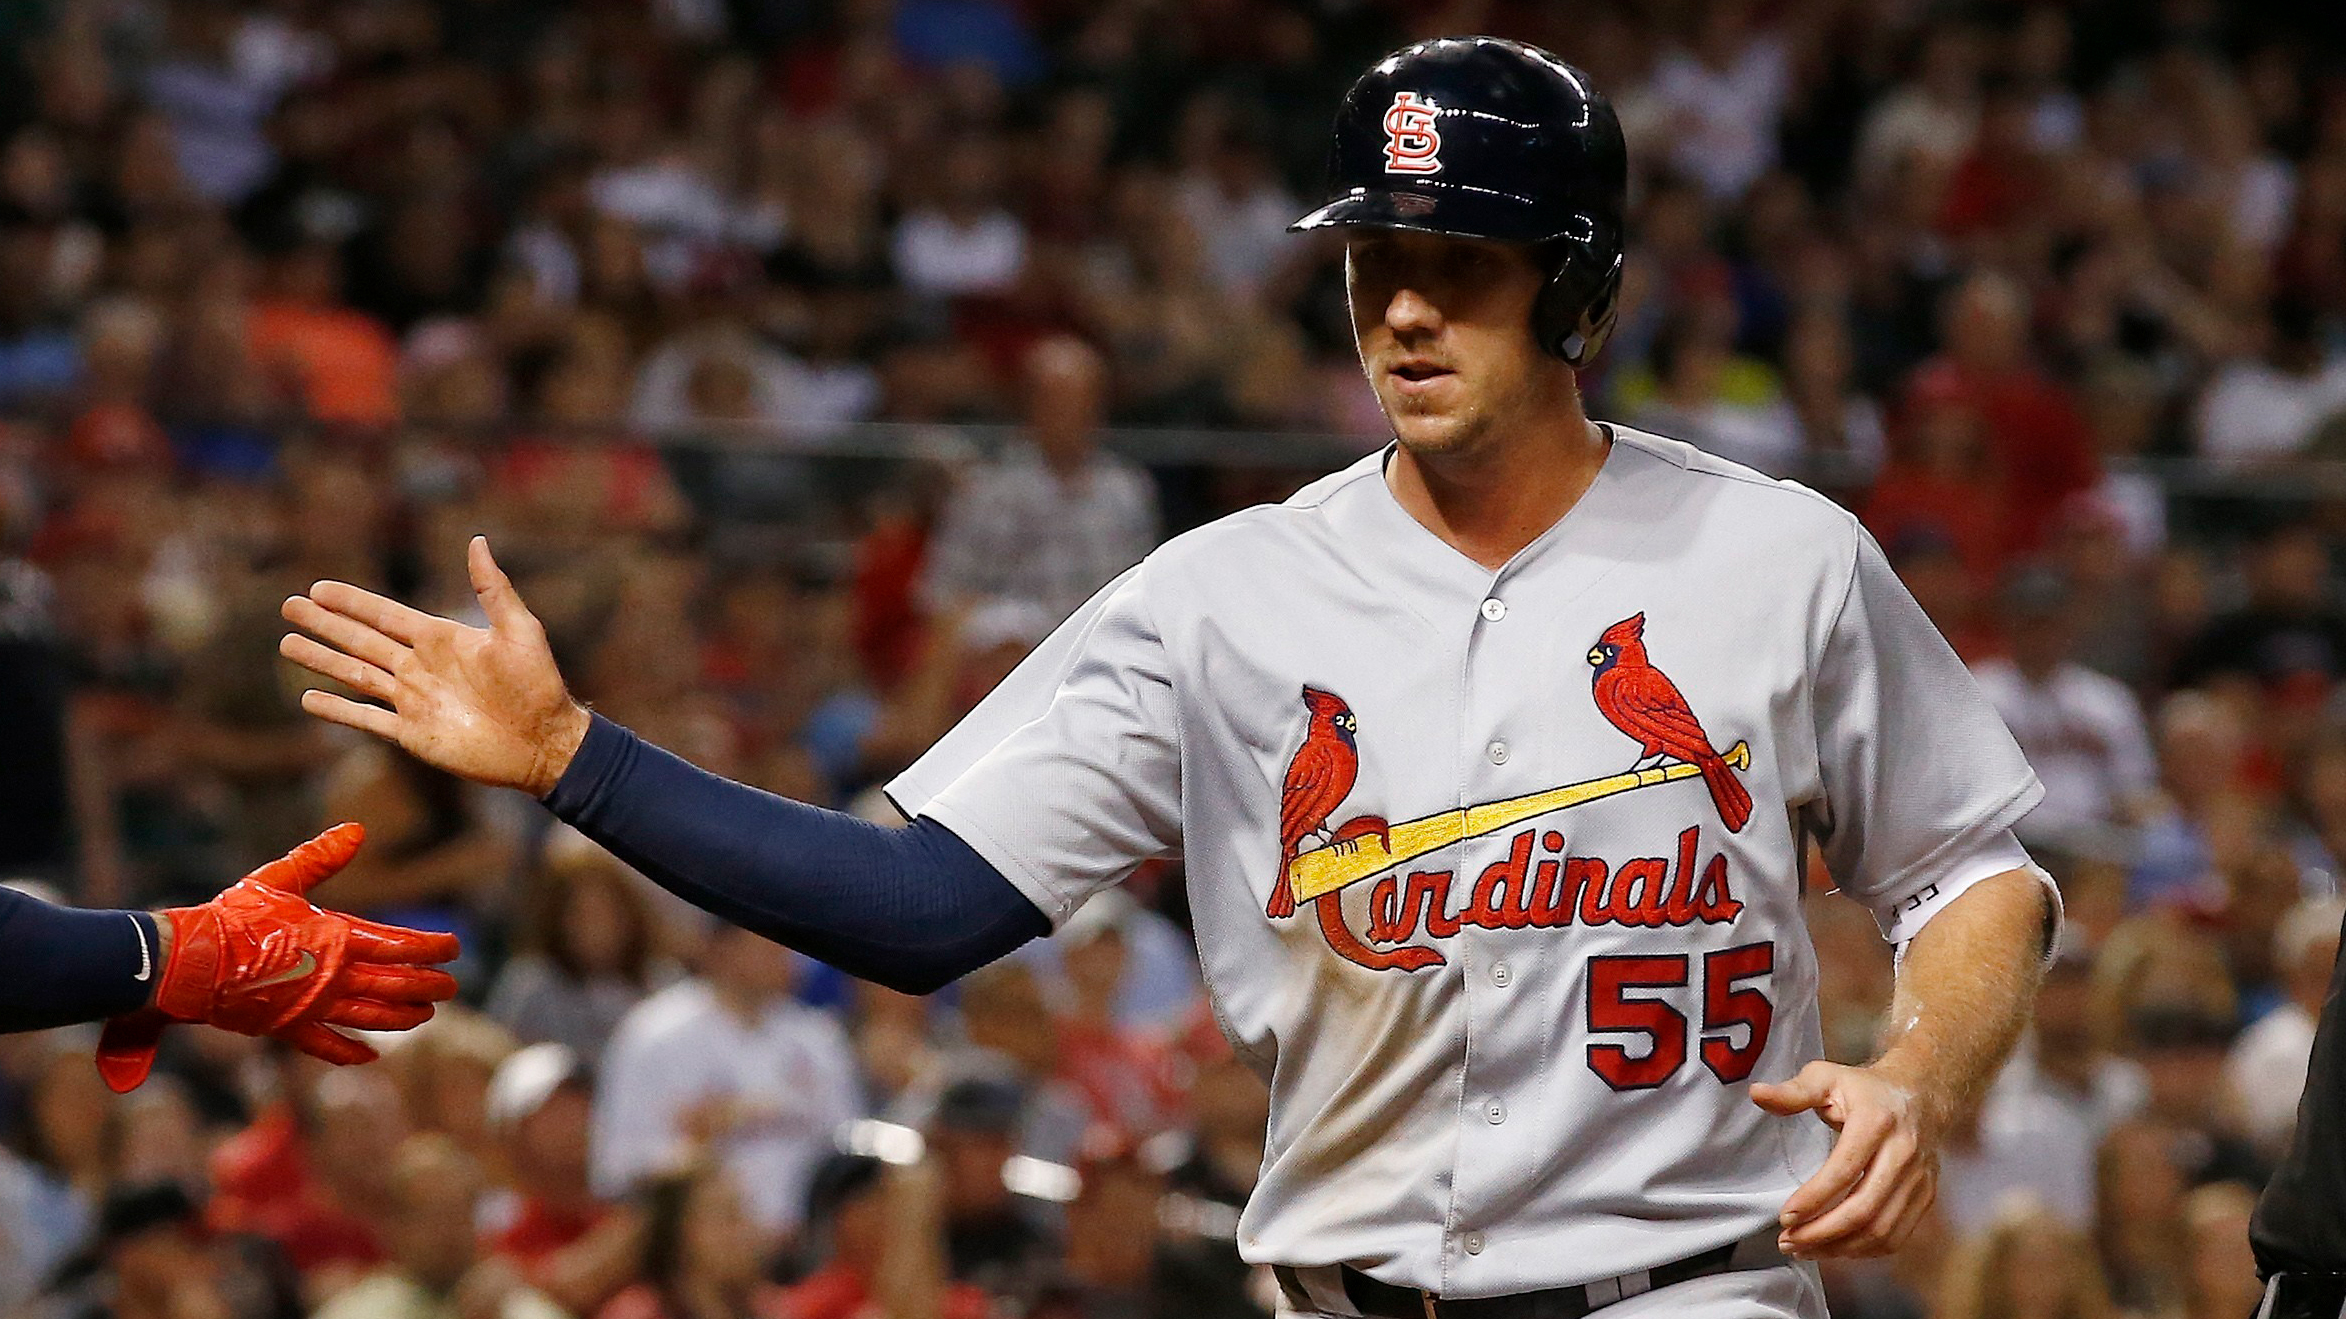 Cardinals activate Piscotty from DL, return Bader to Memphis